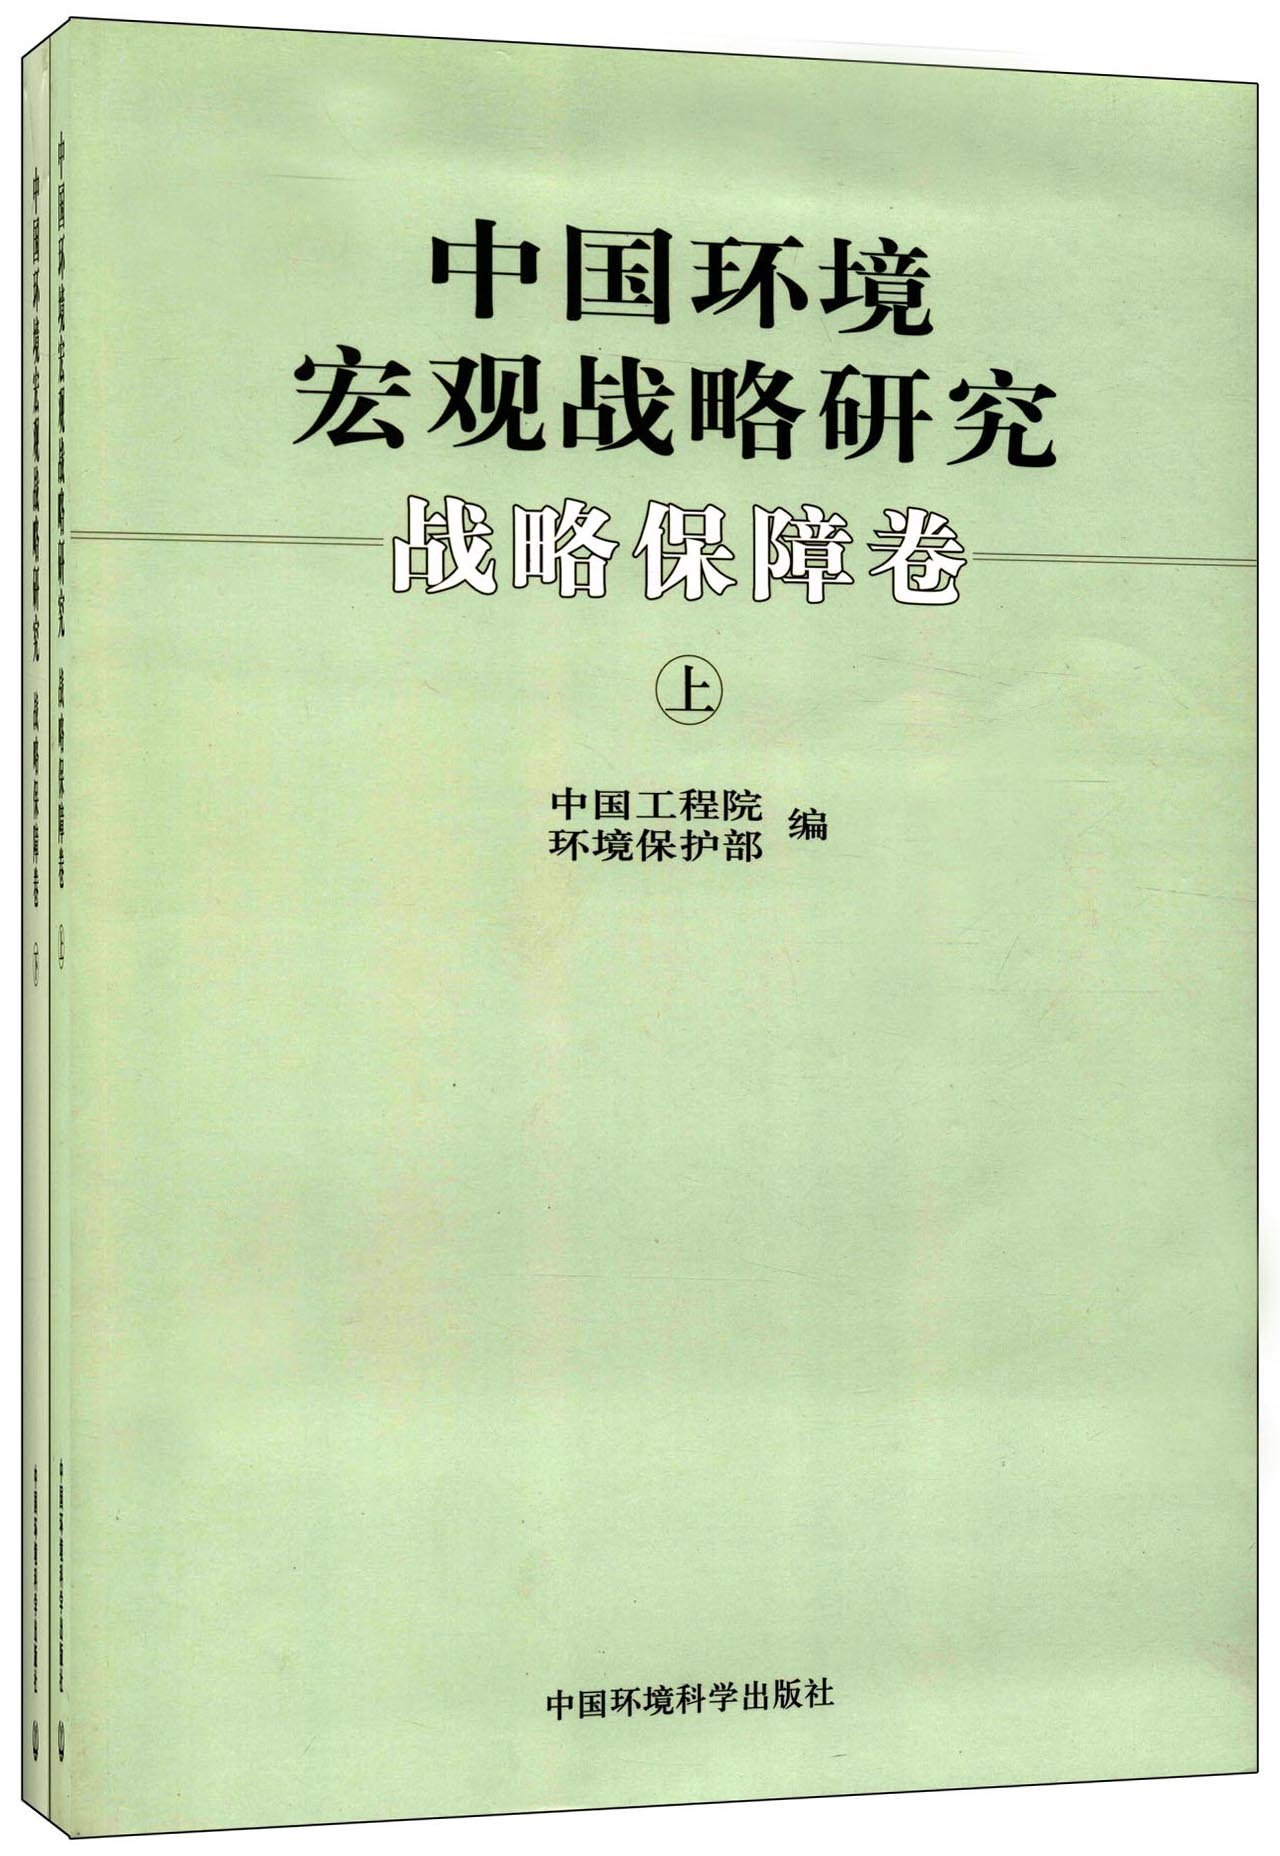 Chinese environmental macro strategy research (Strategic Security Volume) (Set 2 Volumes)(Chinese Edition) PDF